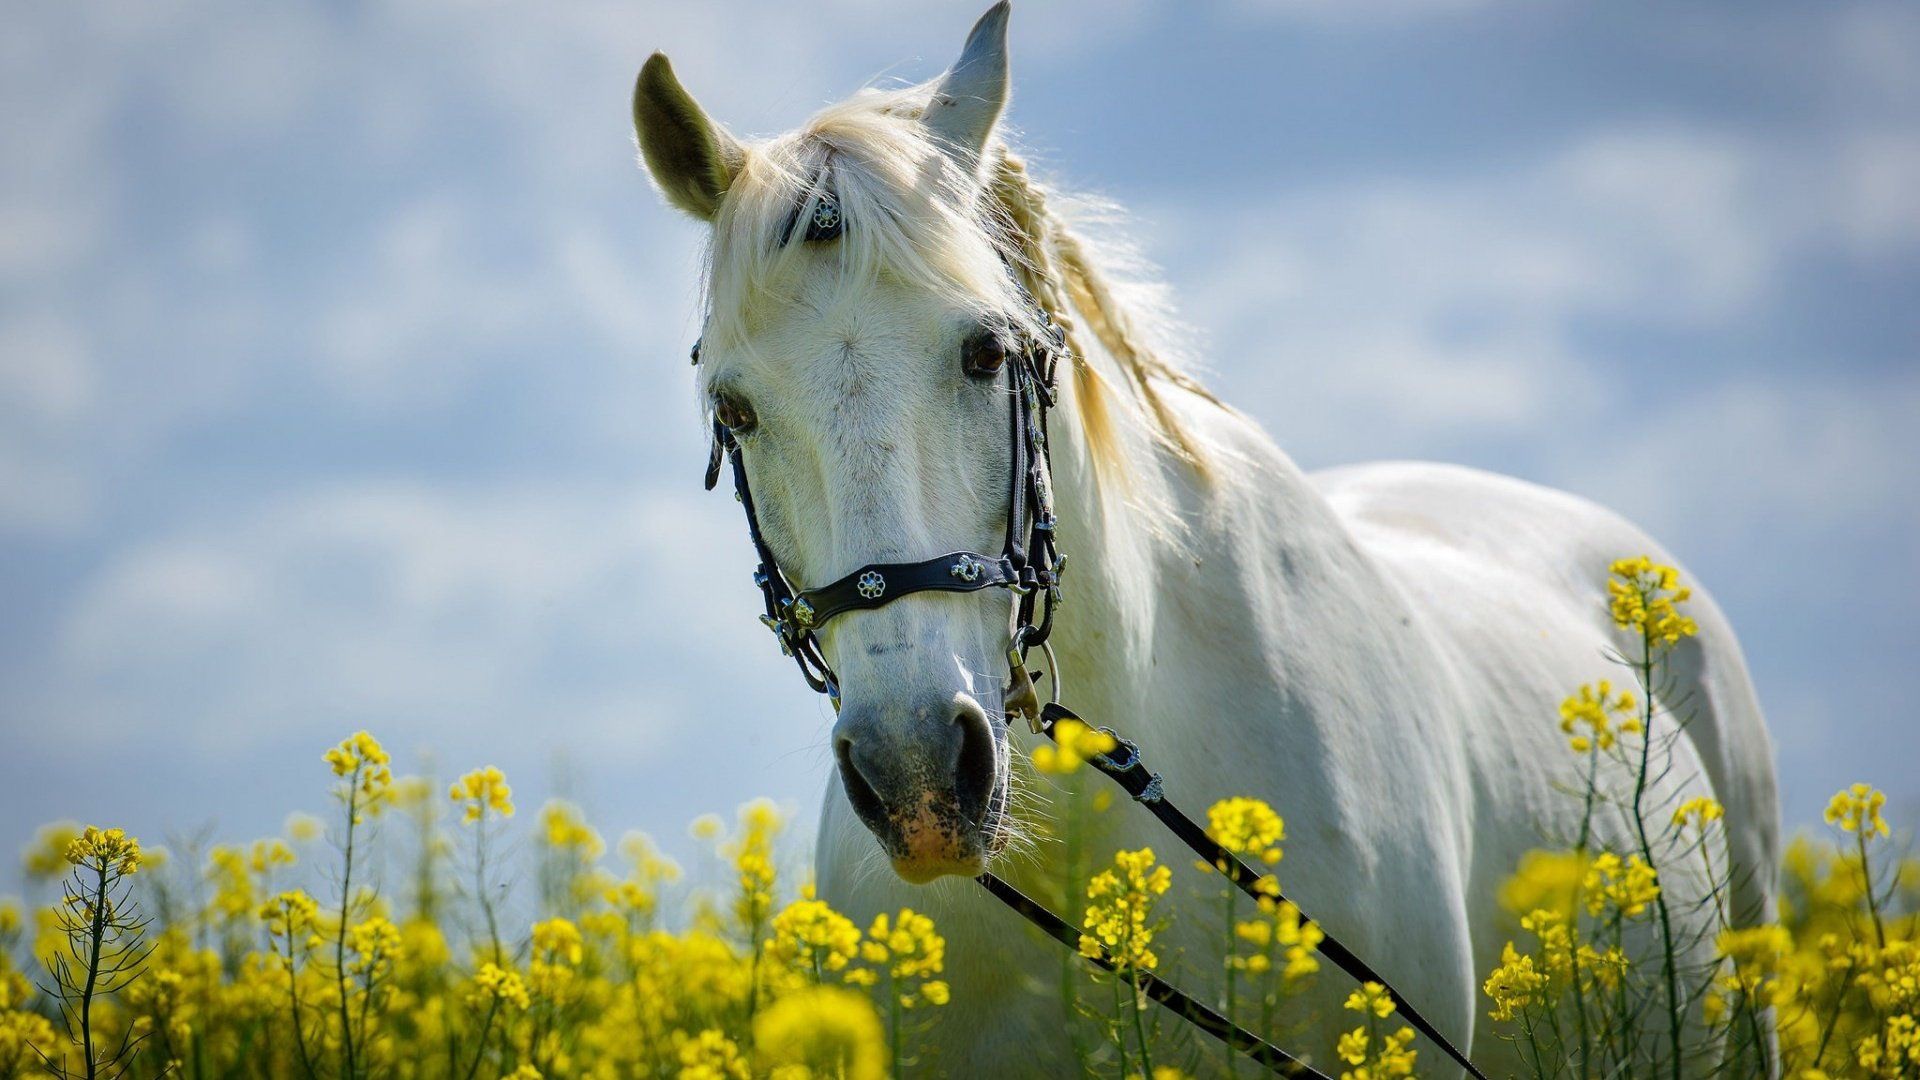 horses and flowers wallpaper - photo #7